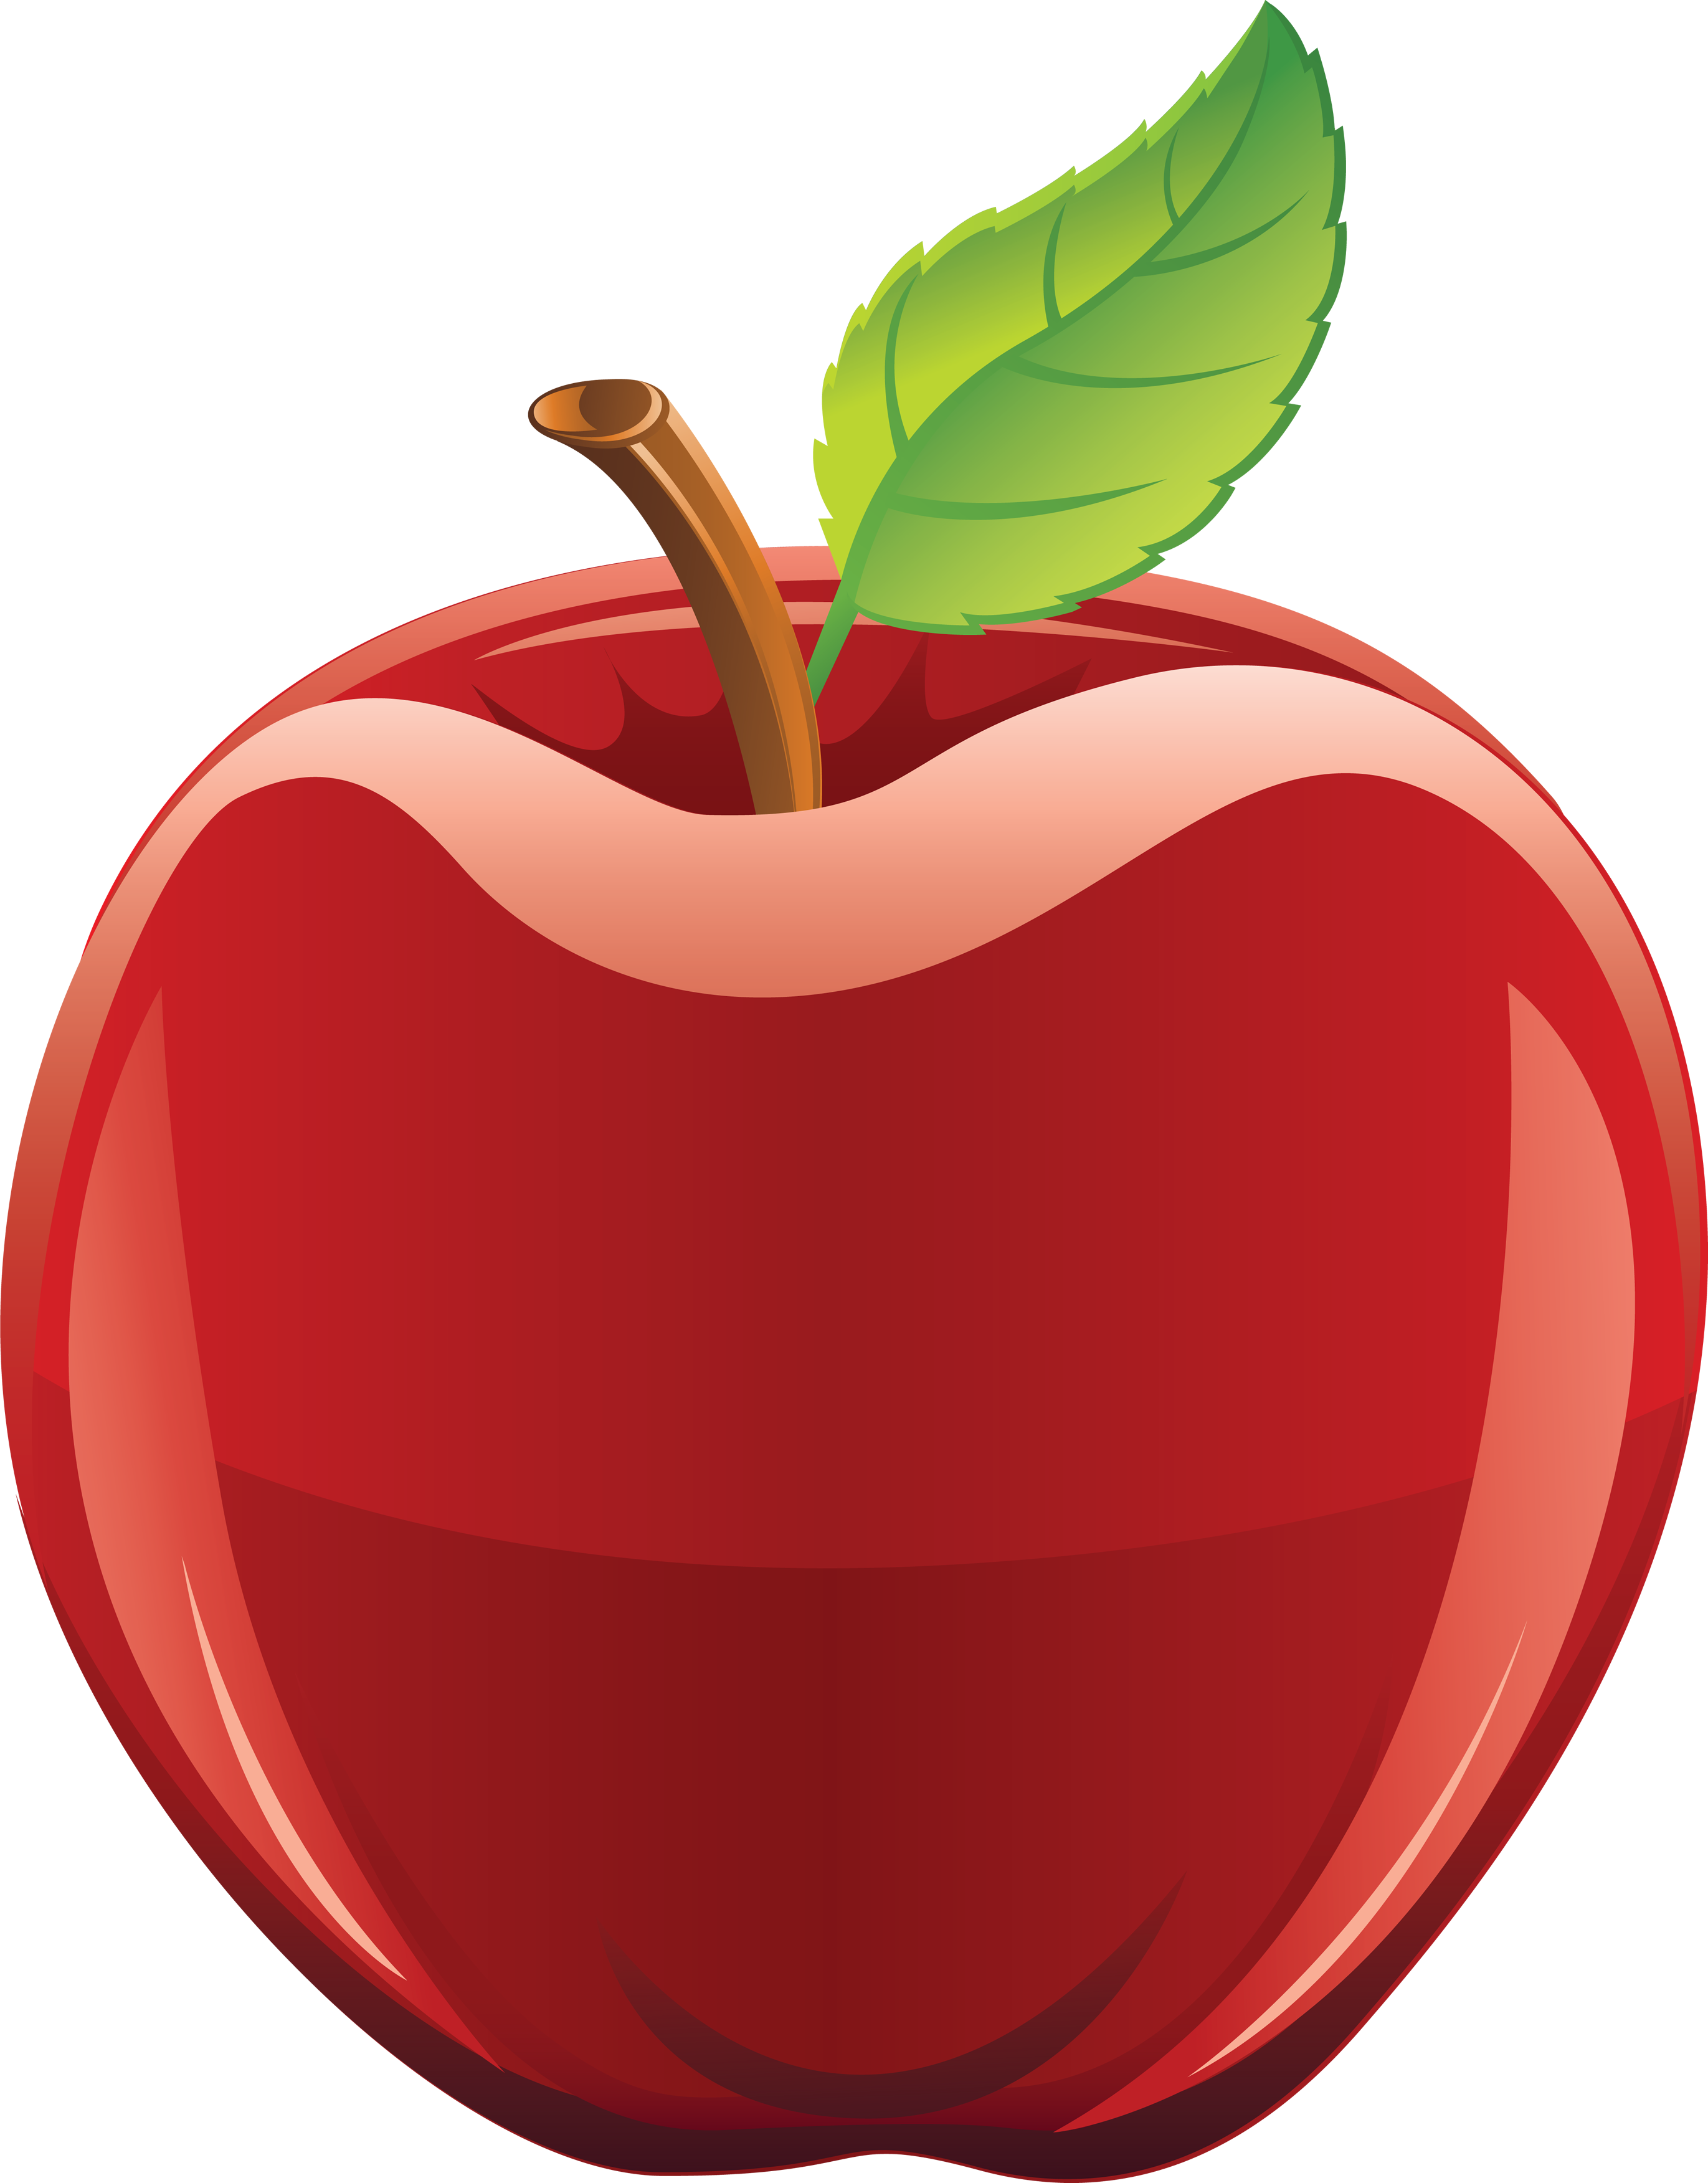 Free clipart of red apple clip art royalty free stock Apple Clip art - 3d cartoon silhouettes picture food,Hand-painted ... clip art royalty free stock